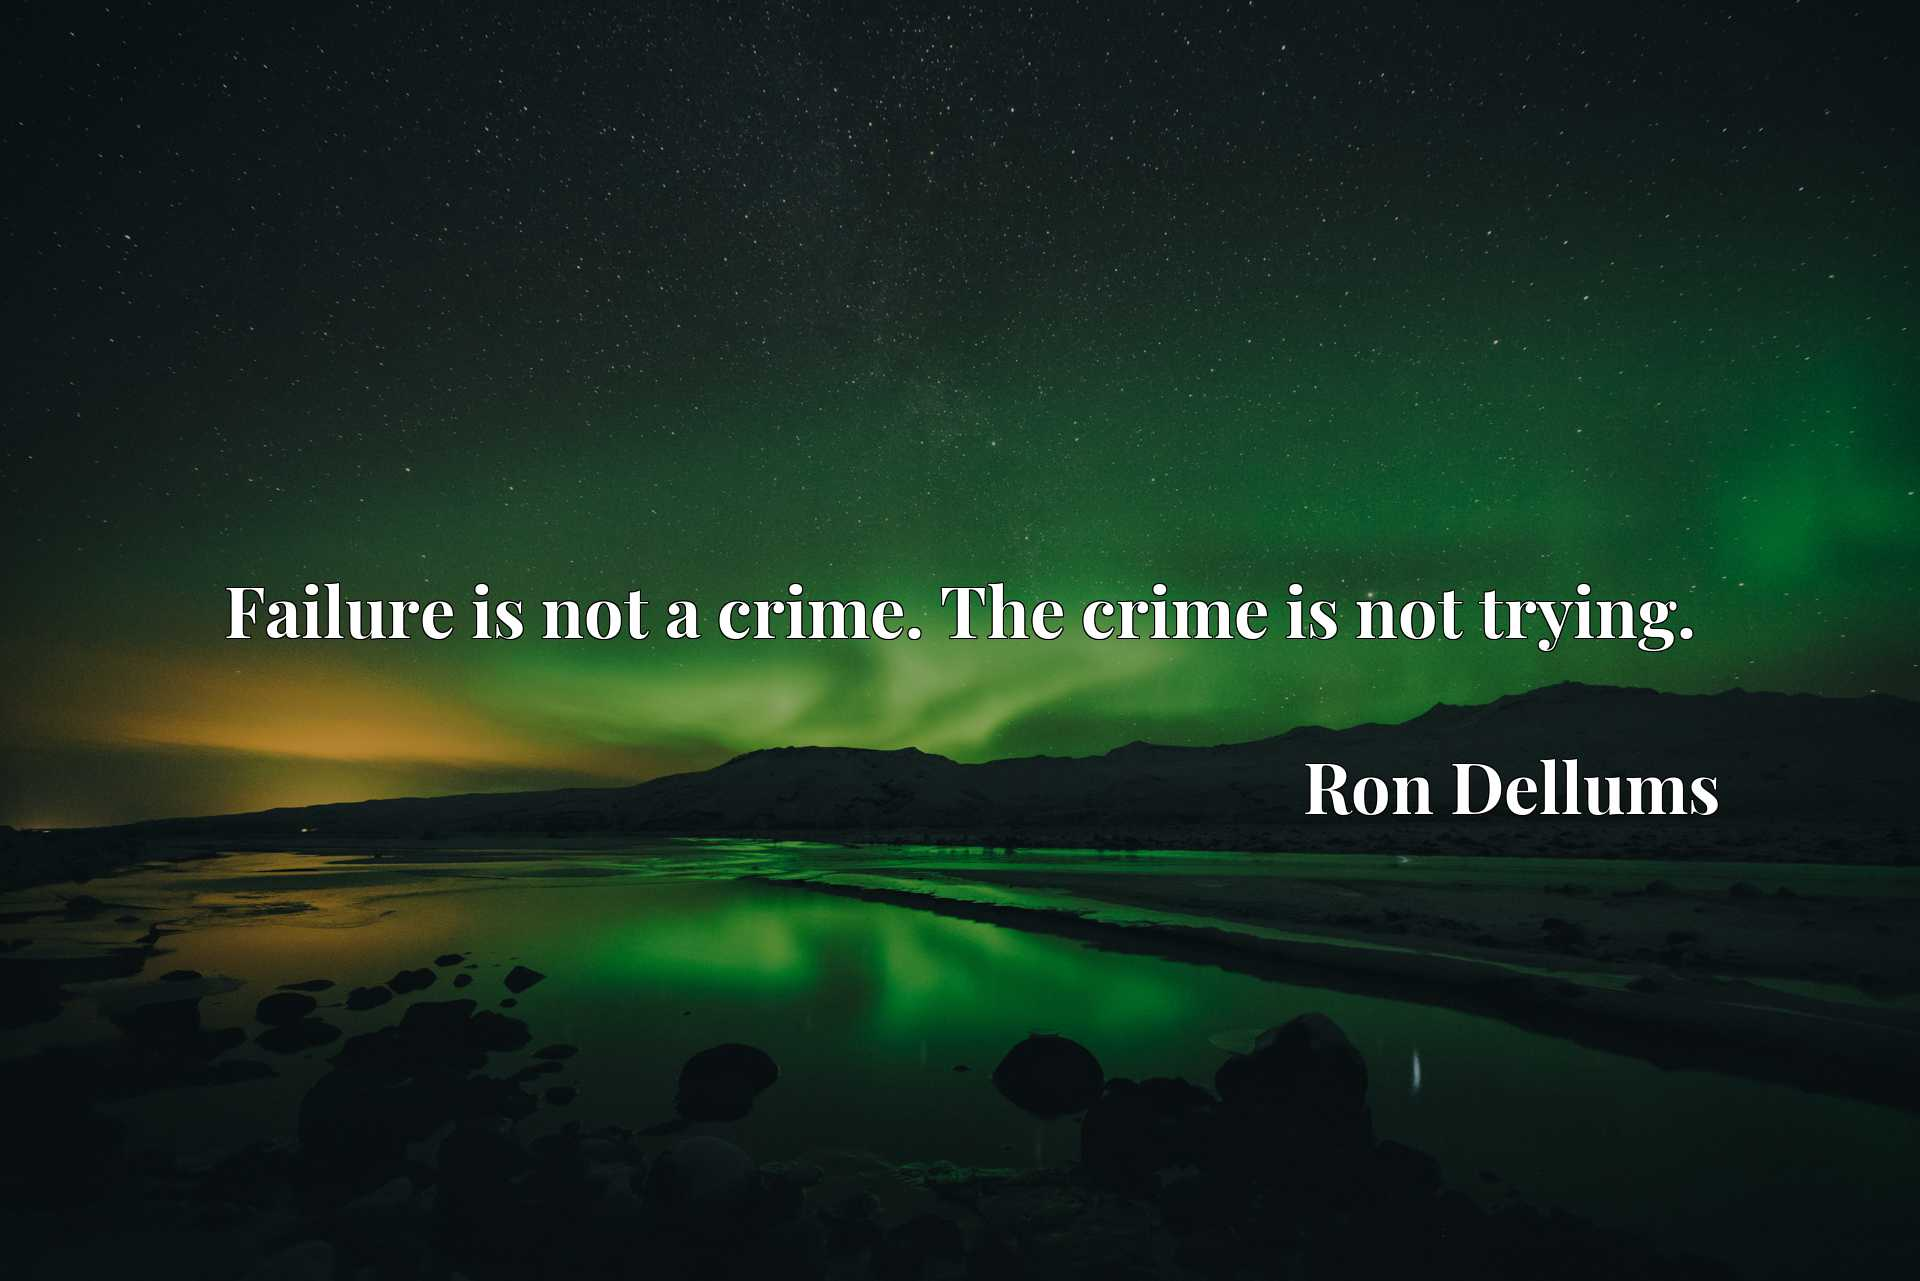 Failure is not a crime. The crime is not trying.